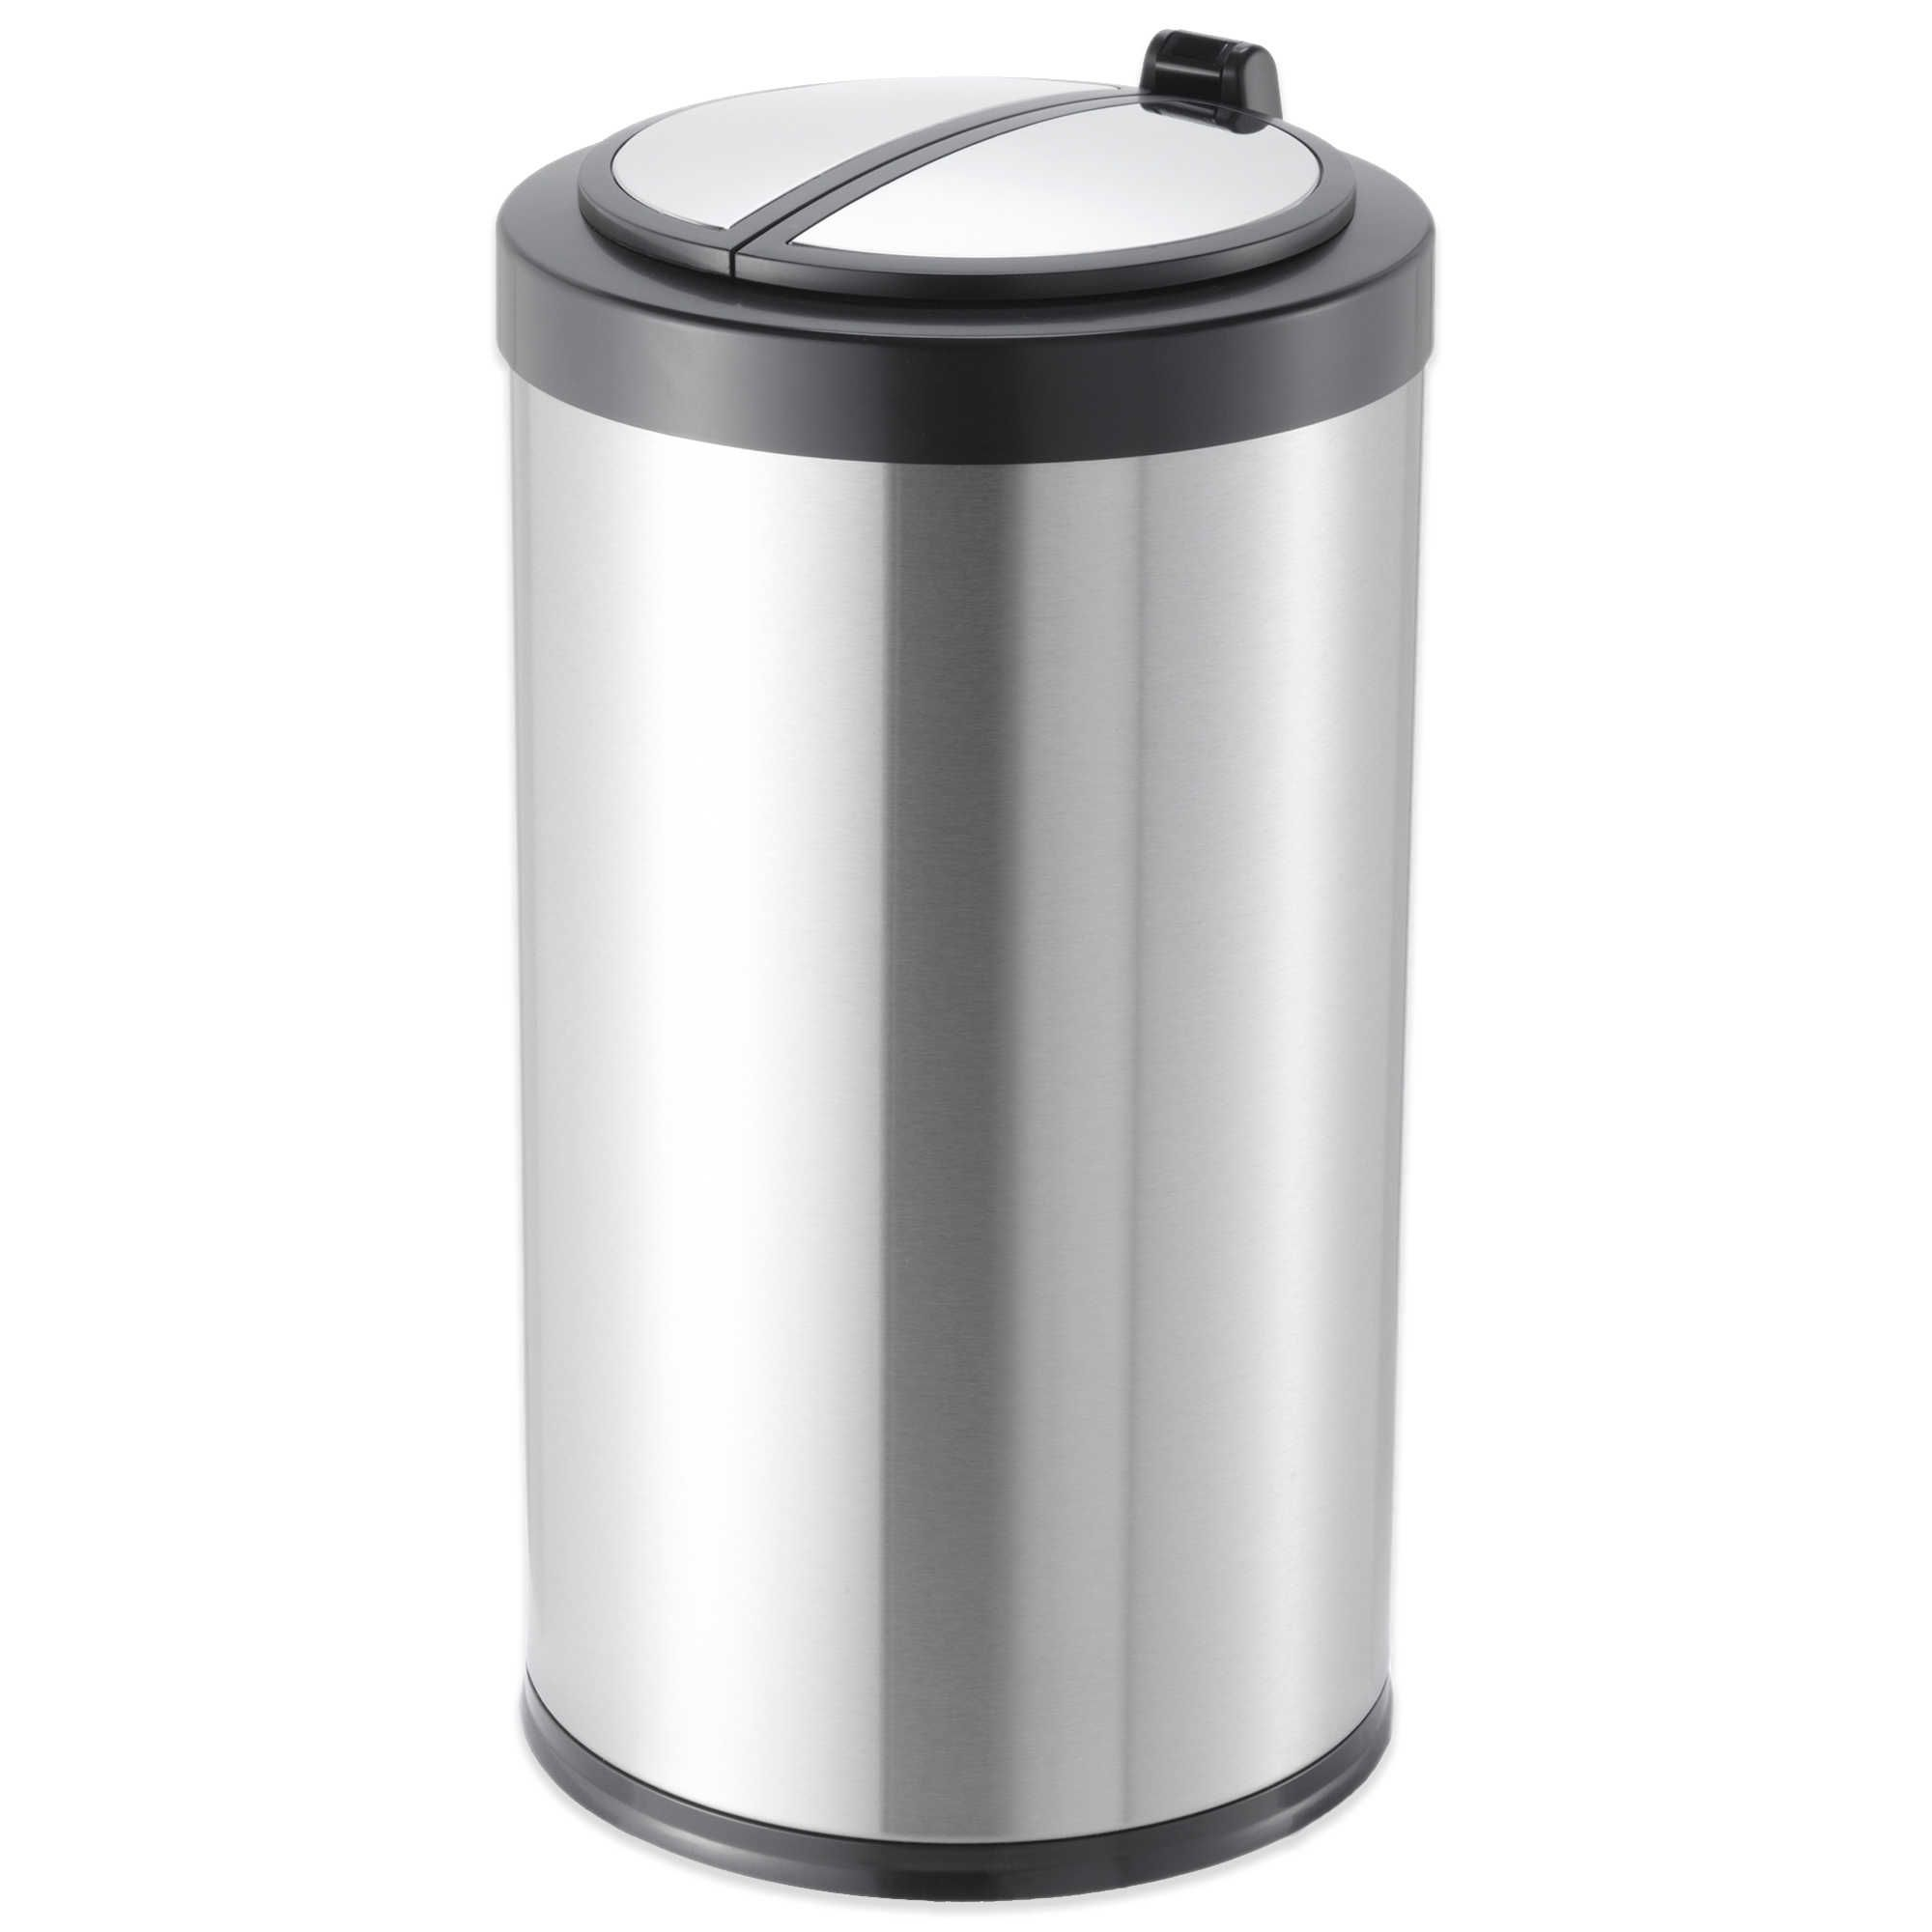 Best 3 2 Gallon Motion Sensor Wastebasket Trash Can Bathroom 640 x 480